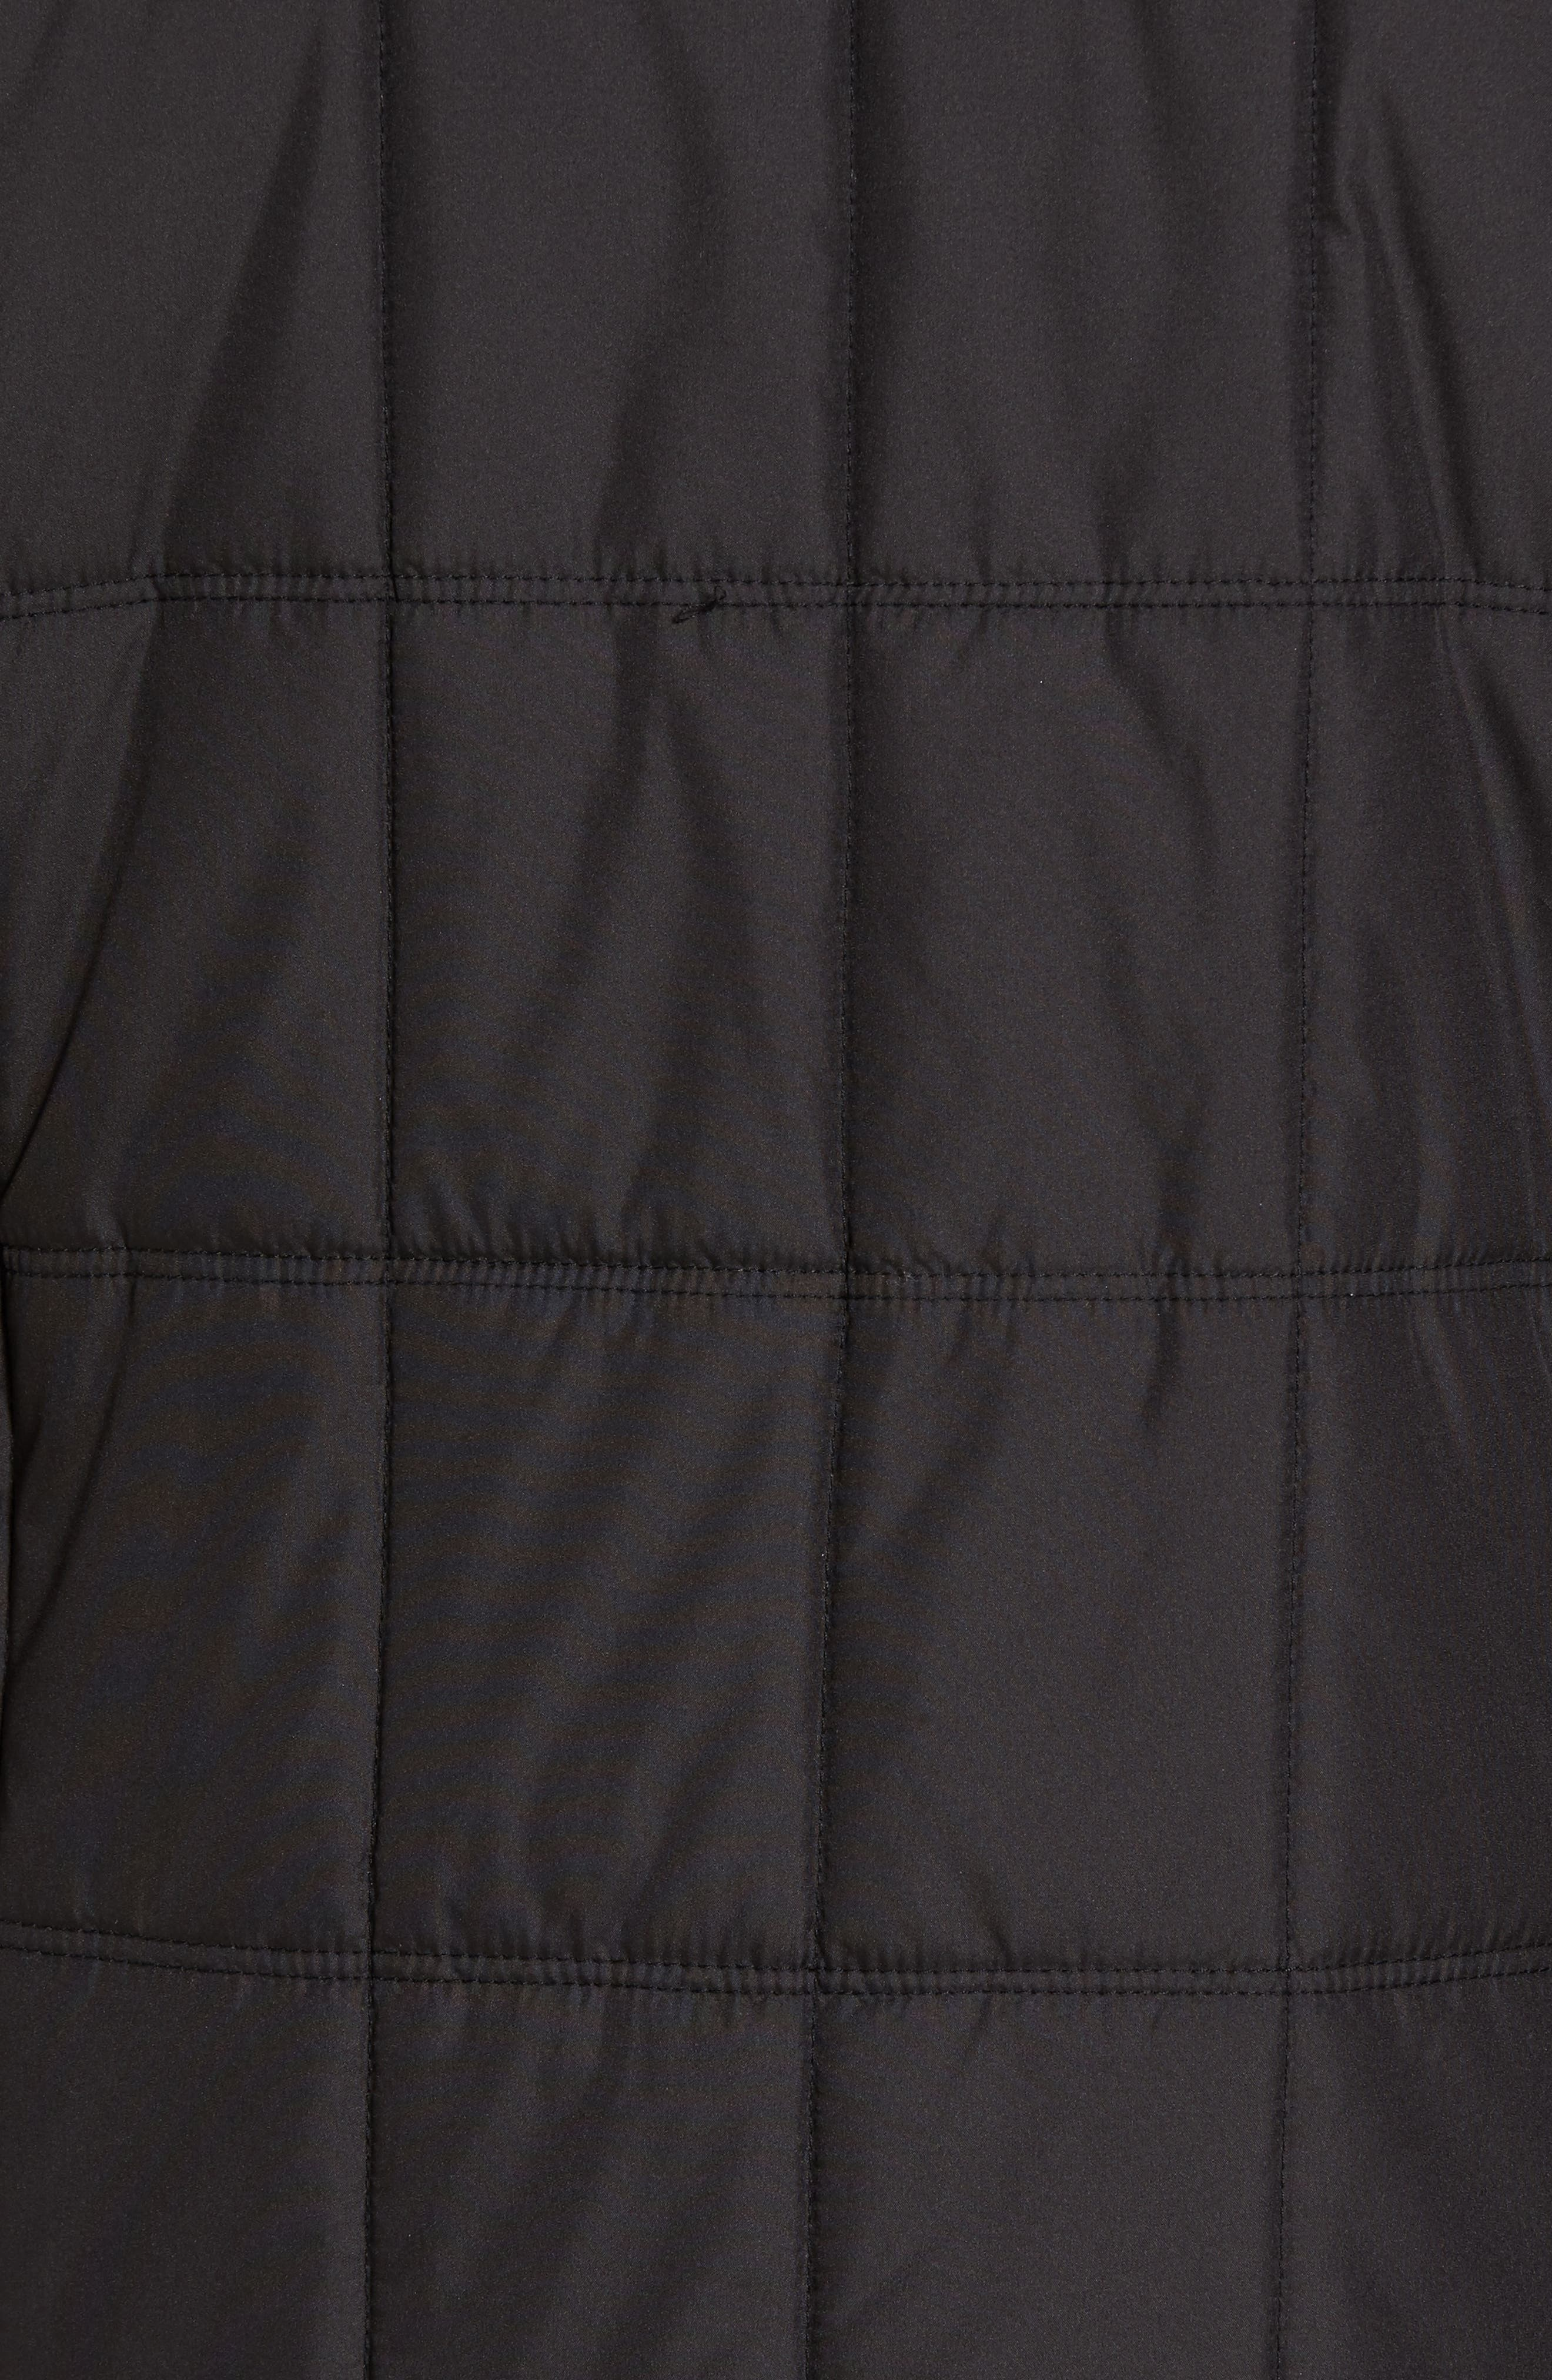 Regular Fit Quilted Jacket,                             Alternate thumbnail 6, color,                             001